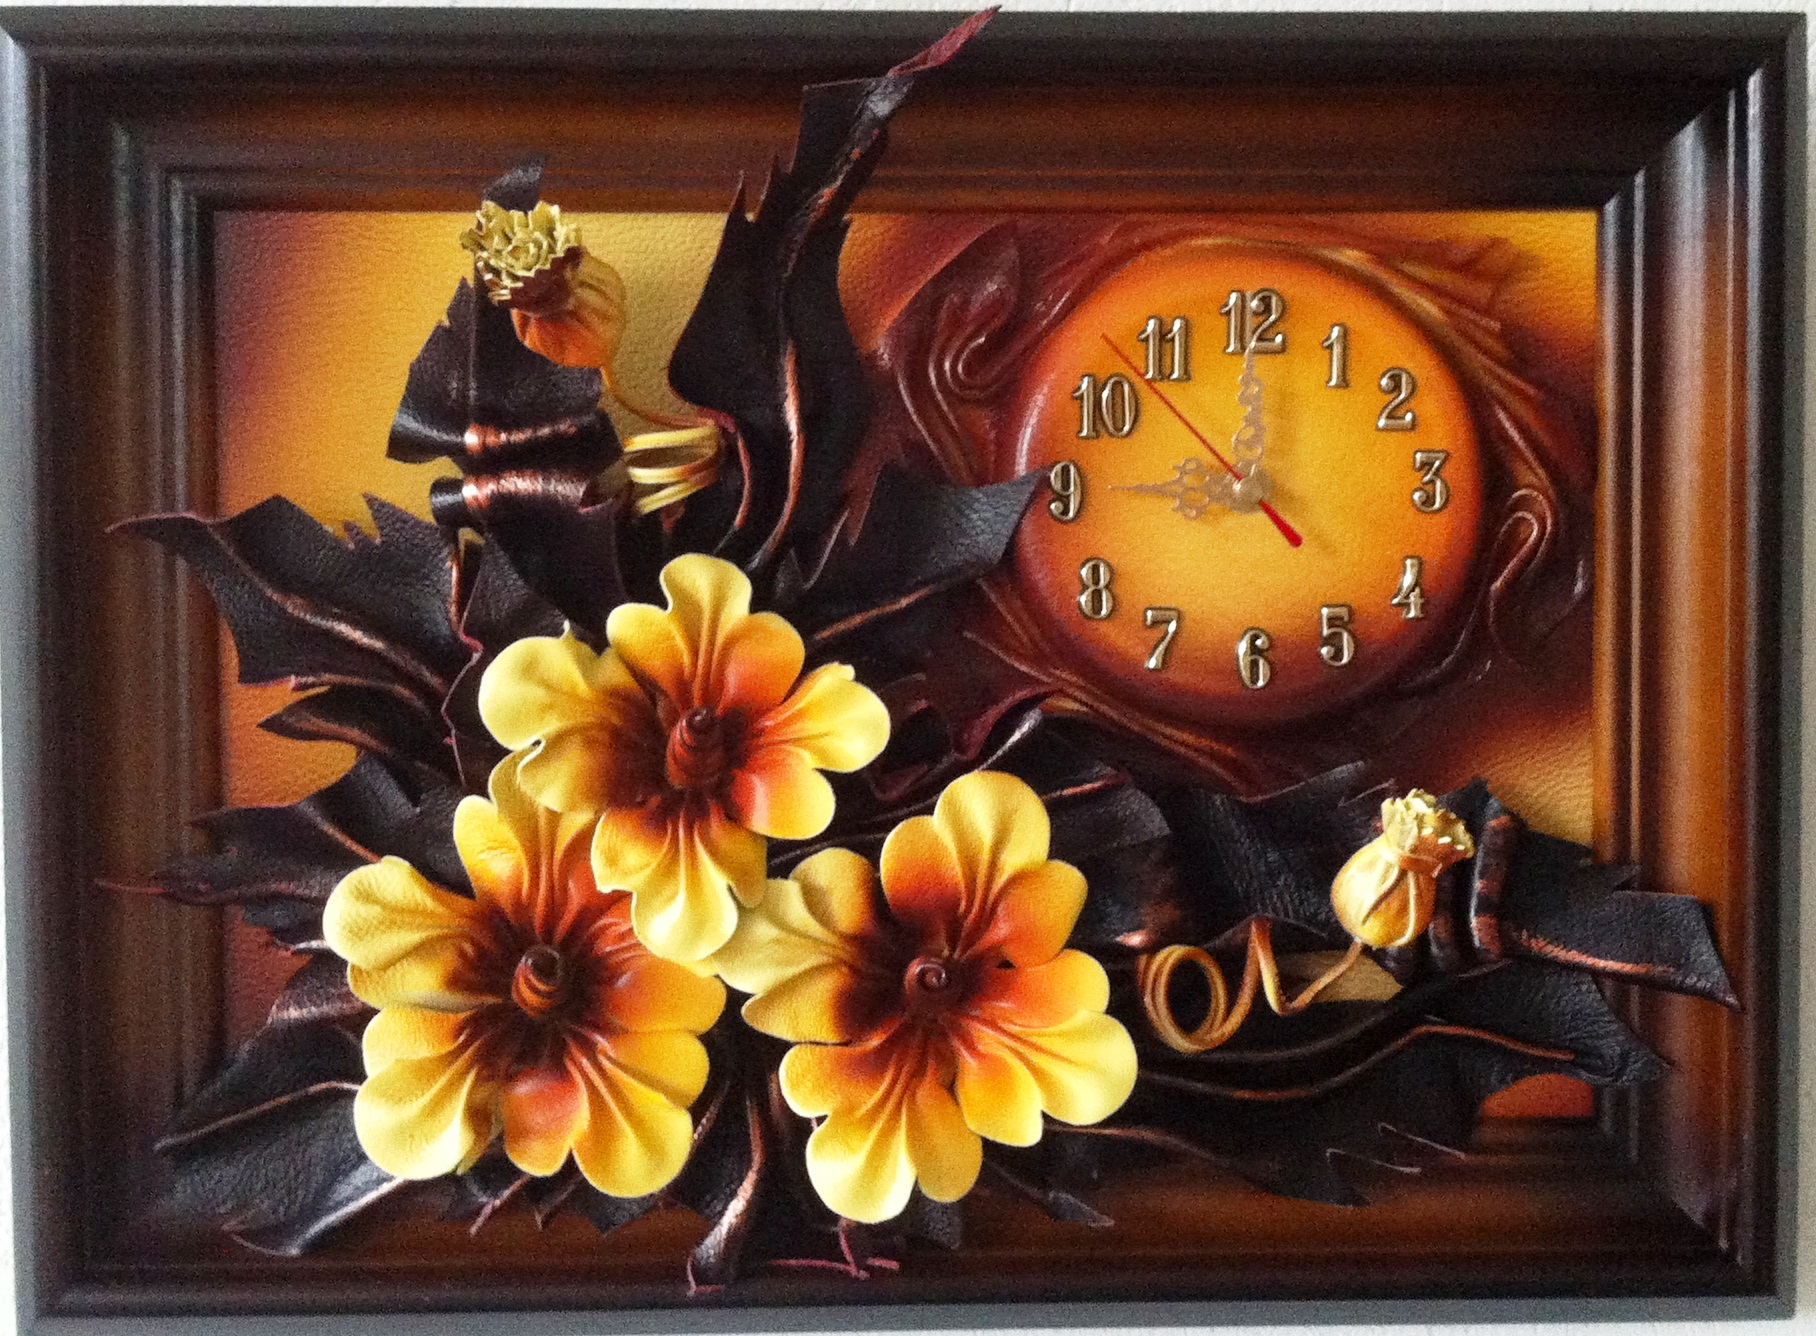 POMARAŃCZOWE KWIATKI. LEATHER CLOCK. POLISH PRODUCER. FOR MANY OCCASIONS.